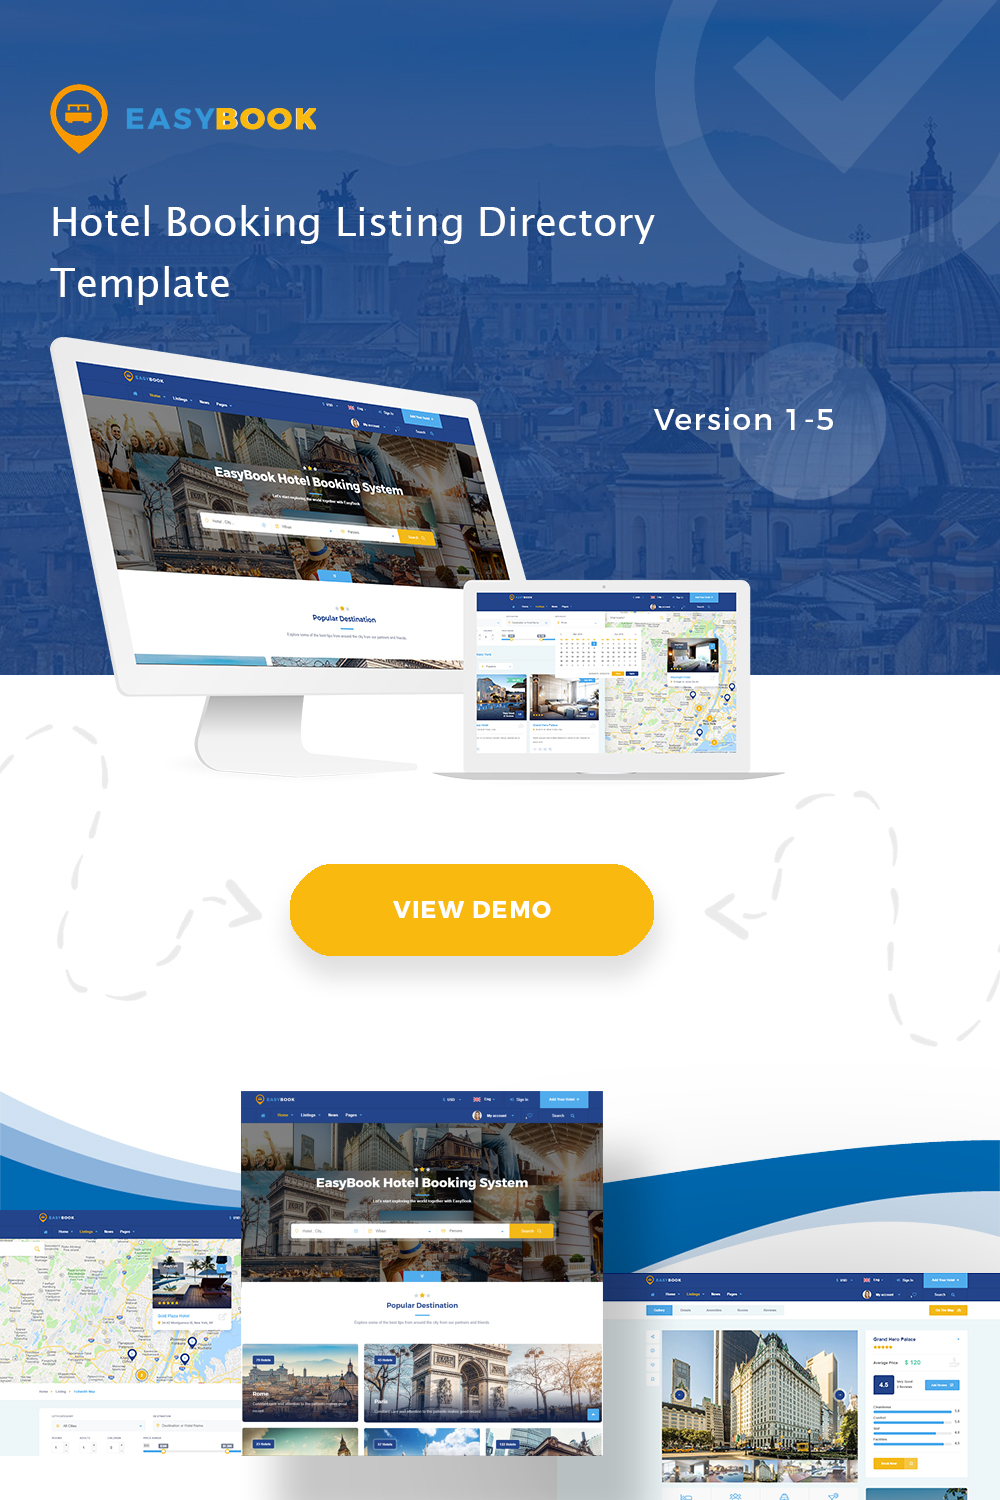 Easybook - Hotel Booking Directory Listing Template by kwst